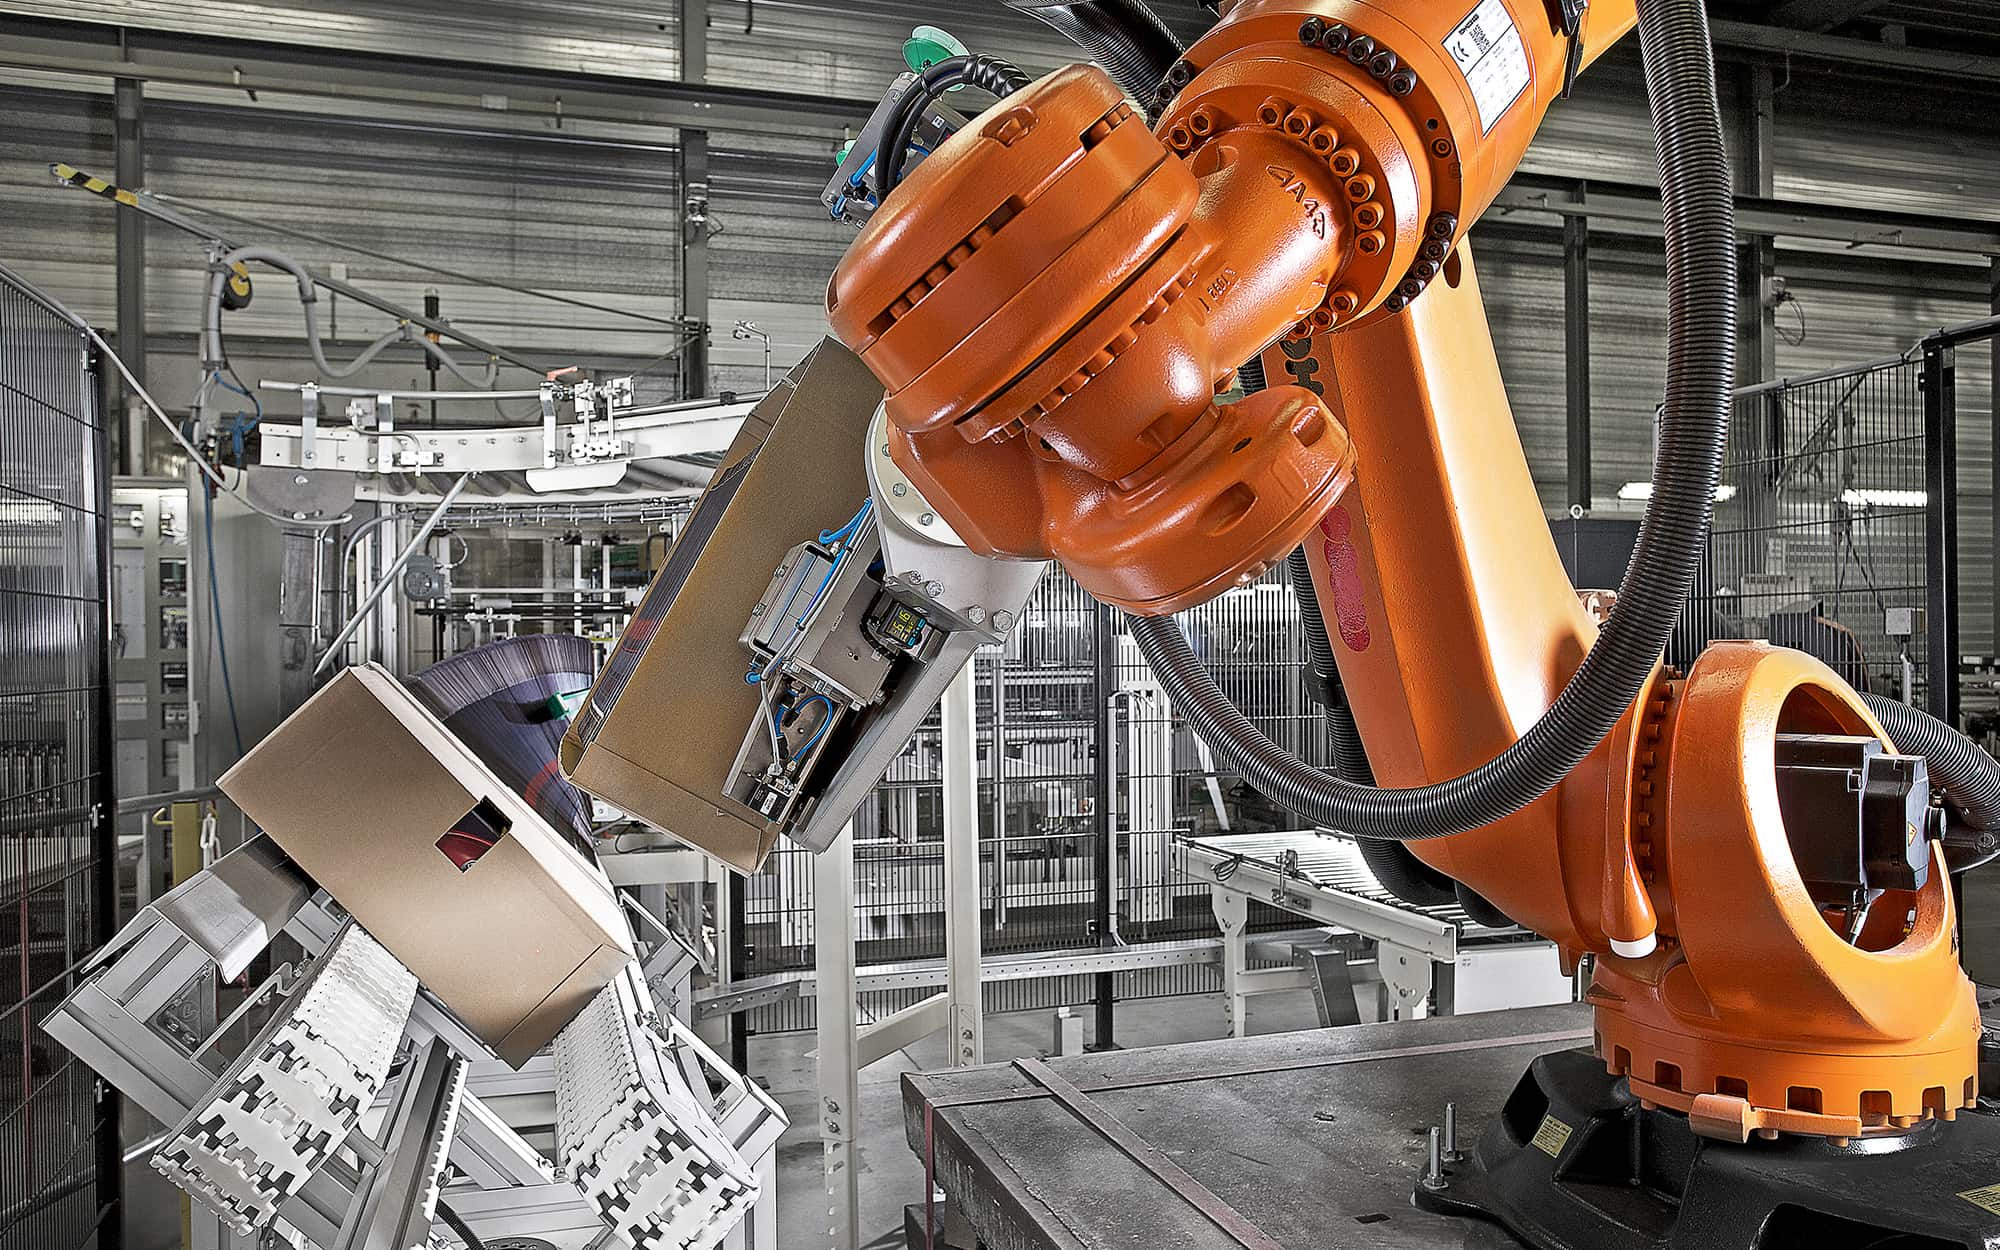 Robotic arm for packaging machines for Molins Plc Holland by Industrial photographer Ross Vincent